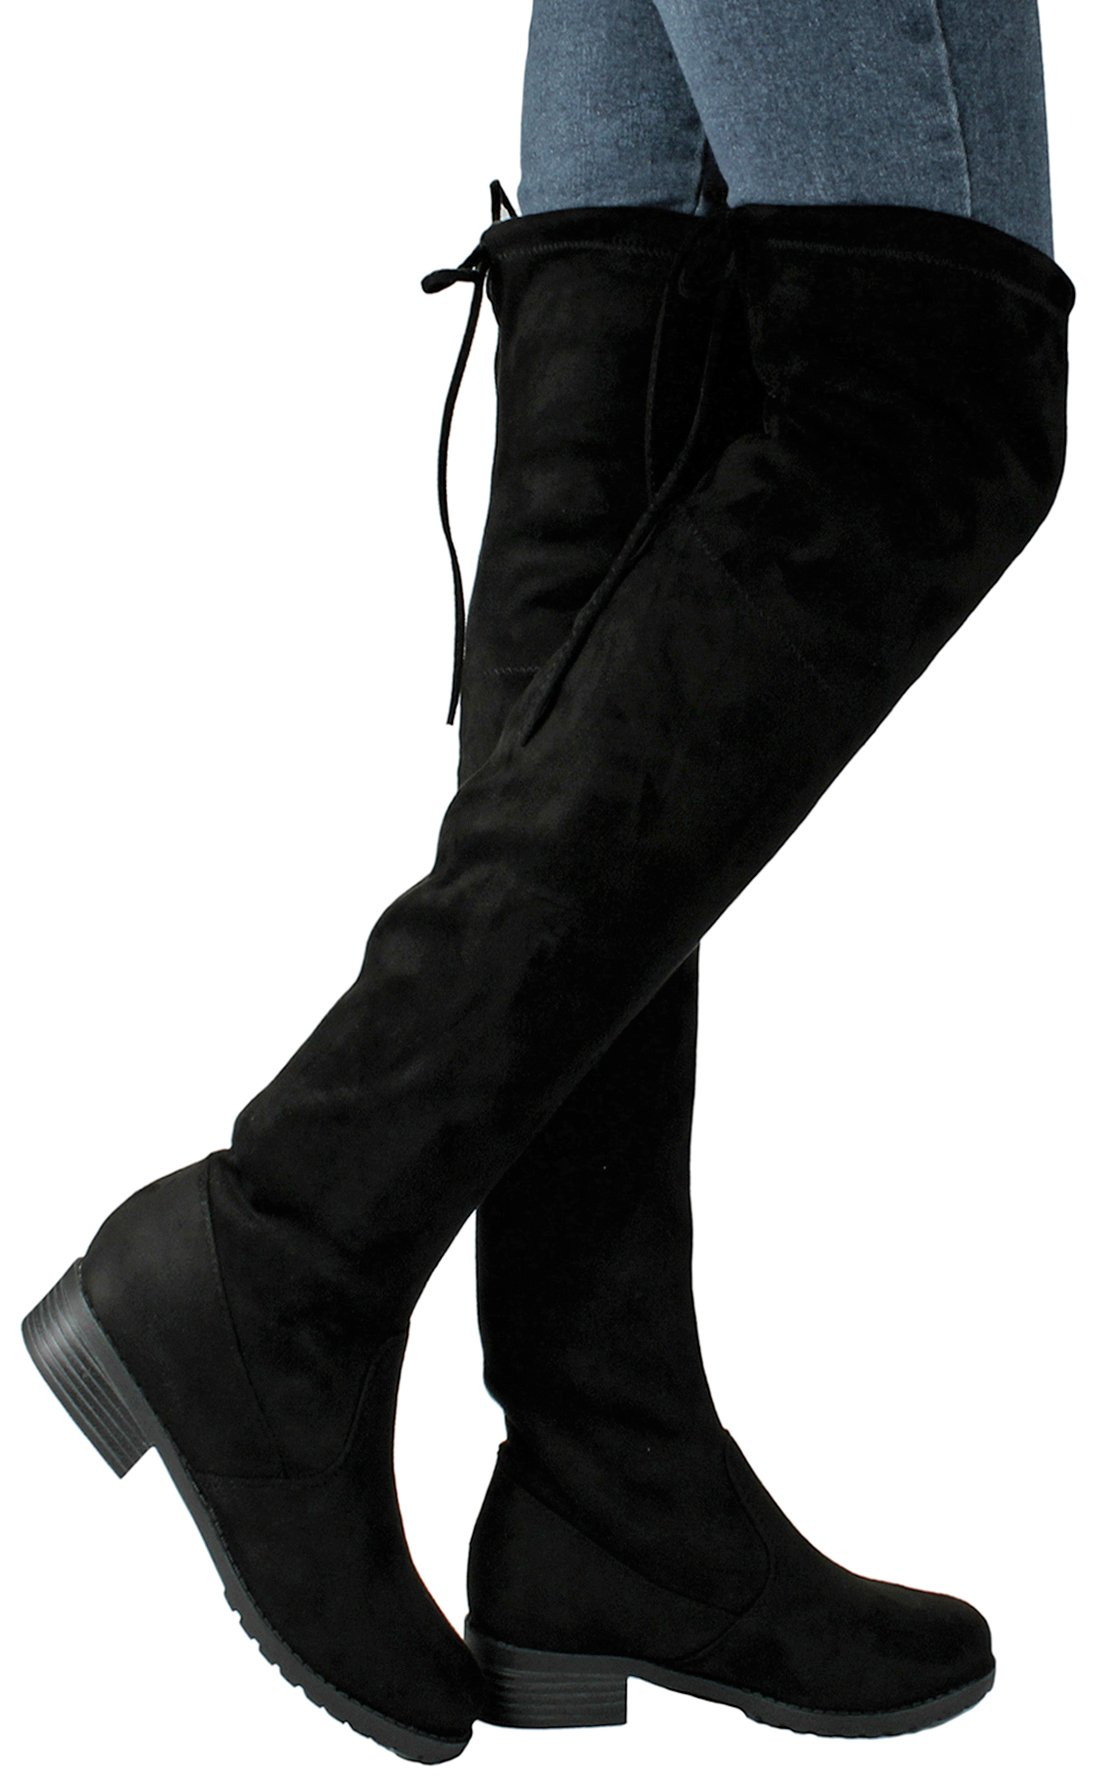 JJF Shoes Women Jalen Black Fashion Slouchy Round Toe Faux Suede Slanted Cuff Over The Knee Boots-9 by JJF Shoes